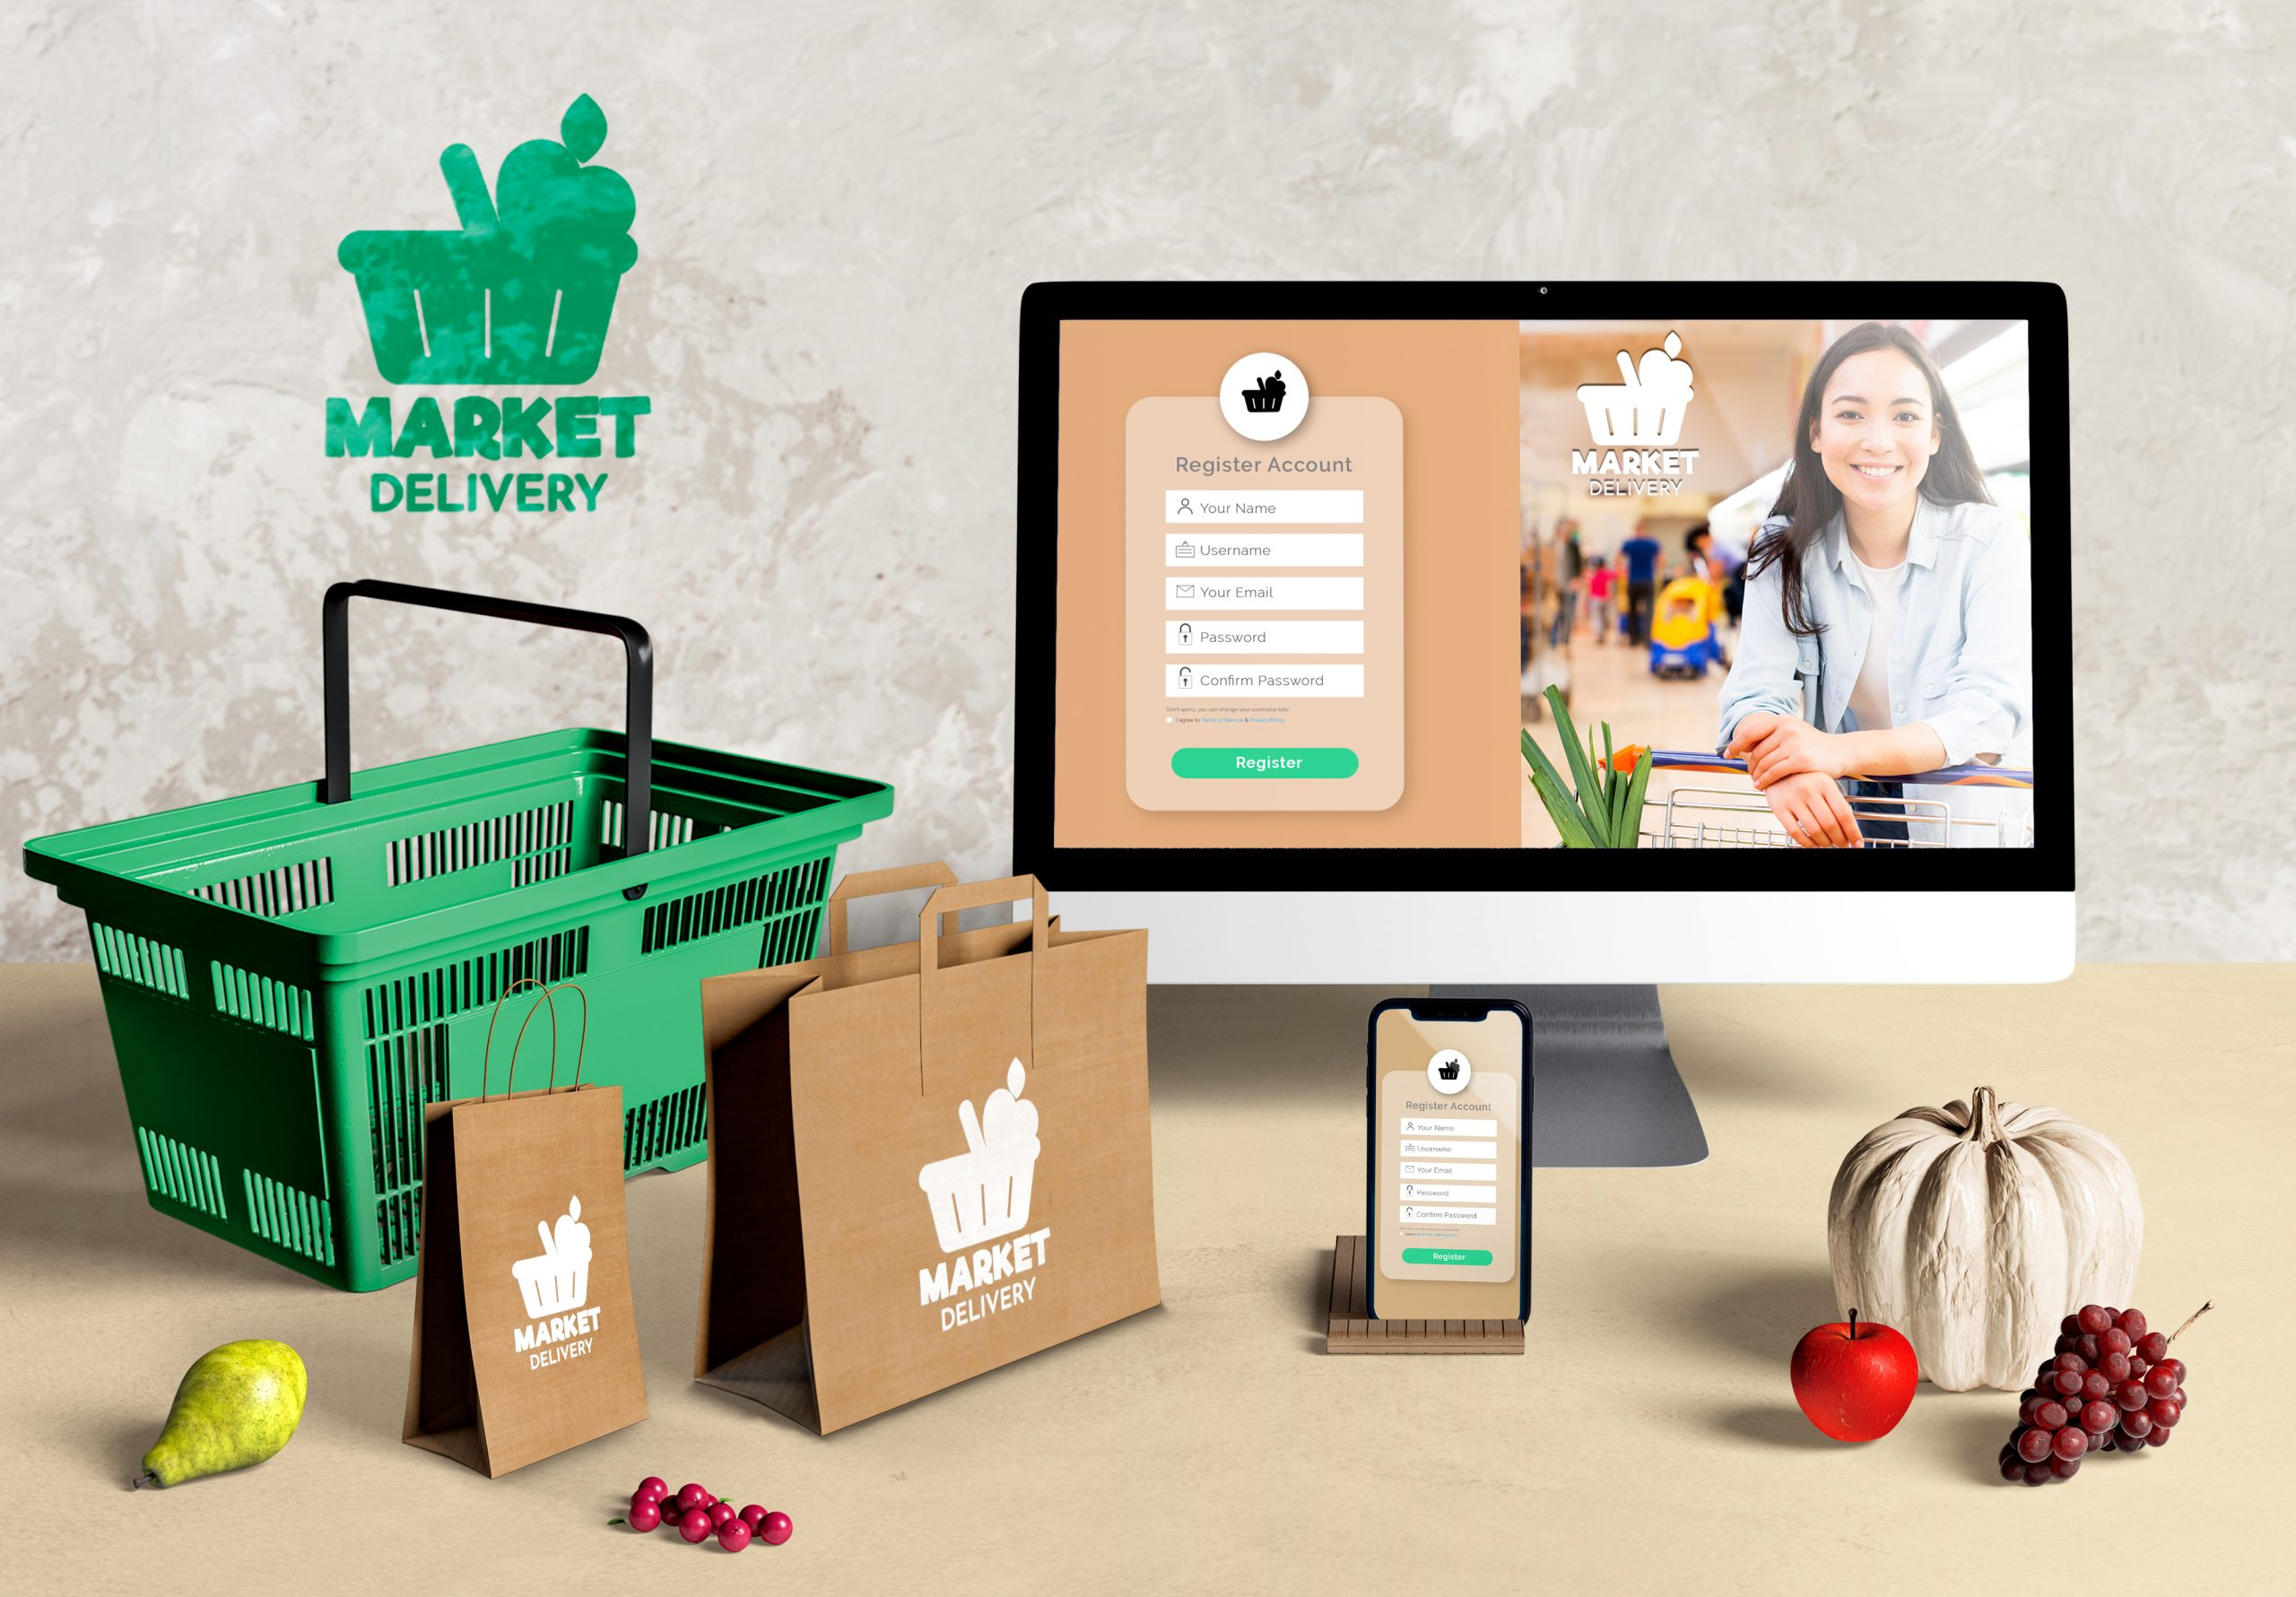 From April 13 Grocery Dive: COVID-19 Drives Walmart Grocery Mobile App Download Surge